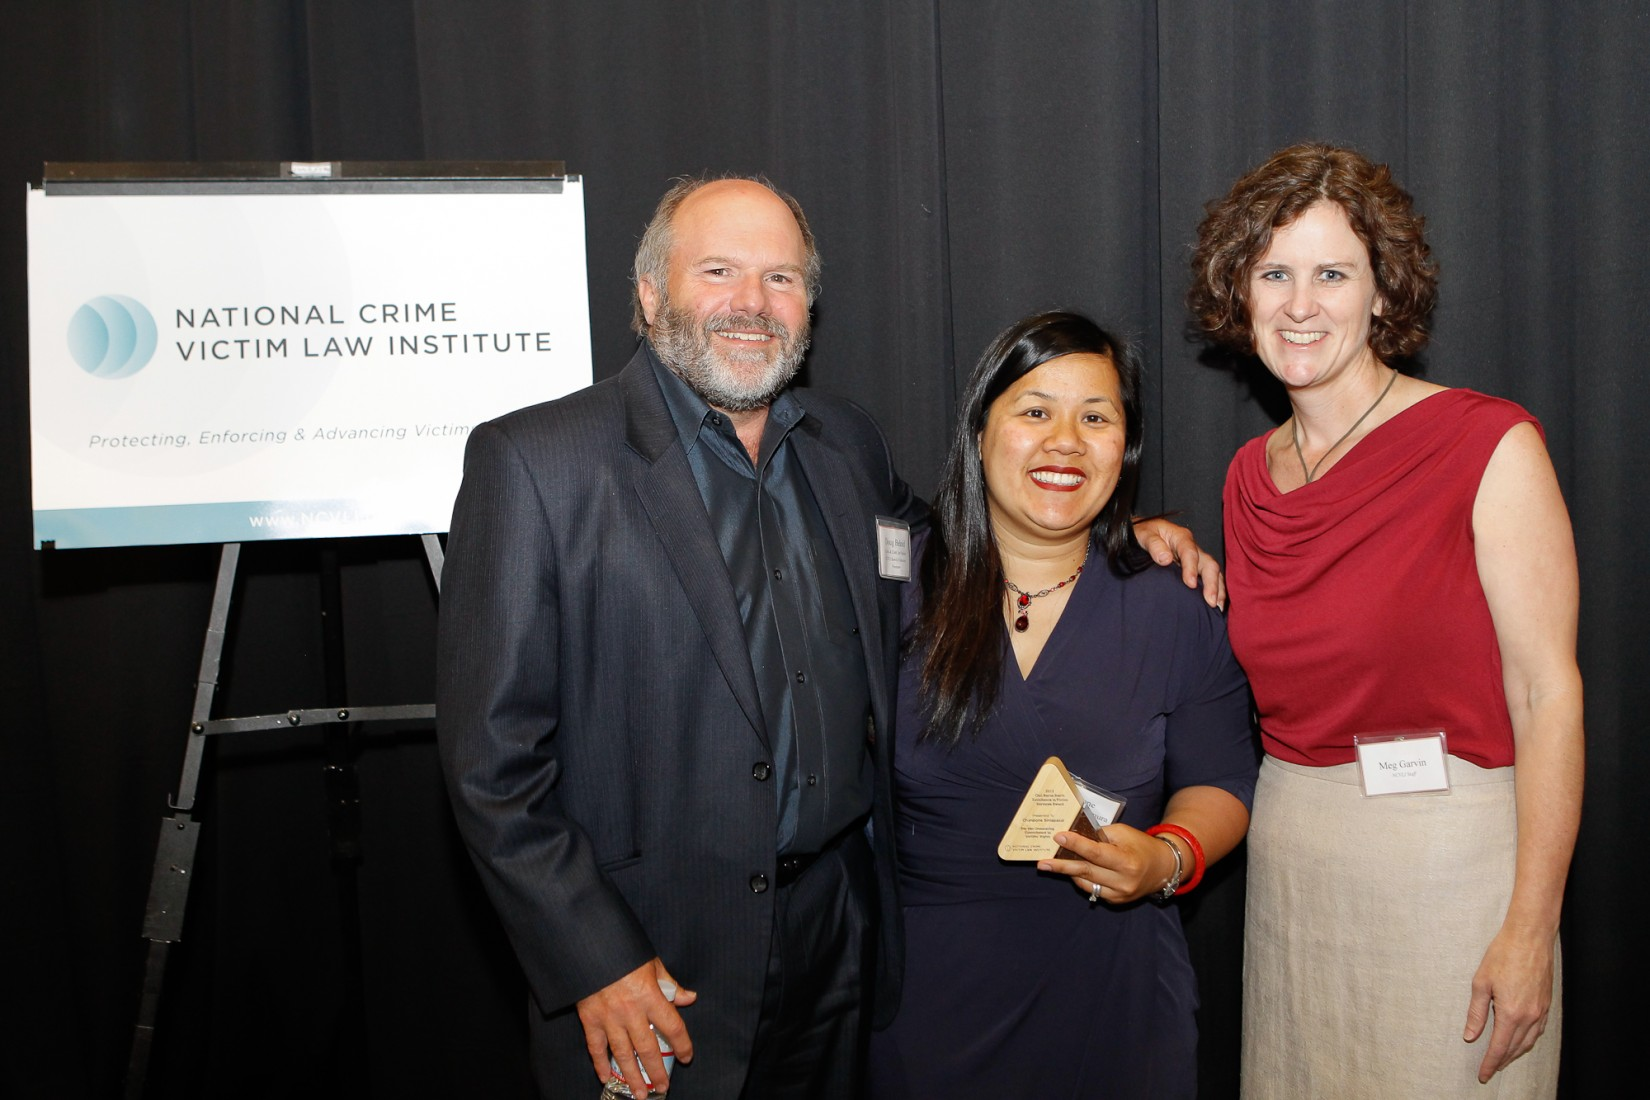 Chanpone Sinlapasai, J.D. was the recipient of NCVLI's 2013 Gail Burns-Smith Excellence in Victim Services Award for her tireless efforts advocating on behalf of crime victims in Oregon and beyond.  From left: NCVLI Founder, NCVLI Board of Directors Member, and Lewis & Clark Law Professor Doug Beloof; Chanpone Sinlapasai; NCVLI Executive Director and Clinical Professor Law at Lewis & Clark Law School Meg Garvin.